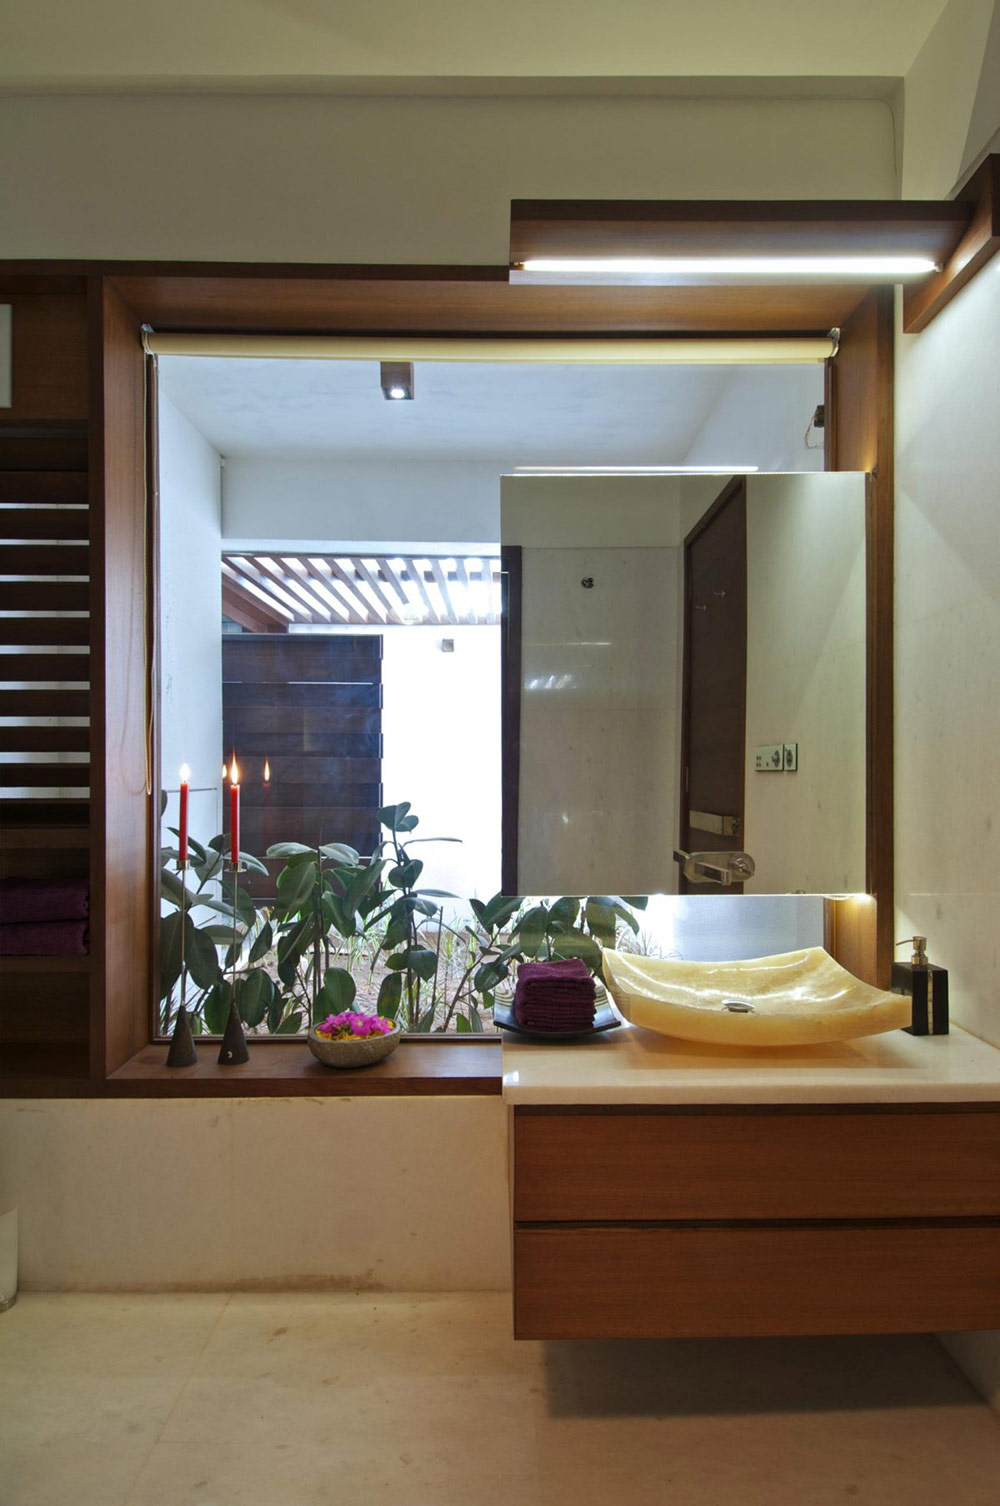 Marble Sink, Courtyard House by Hiren Patel Architects